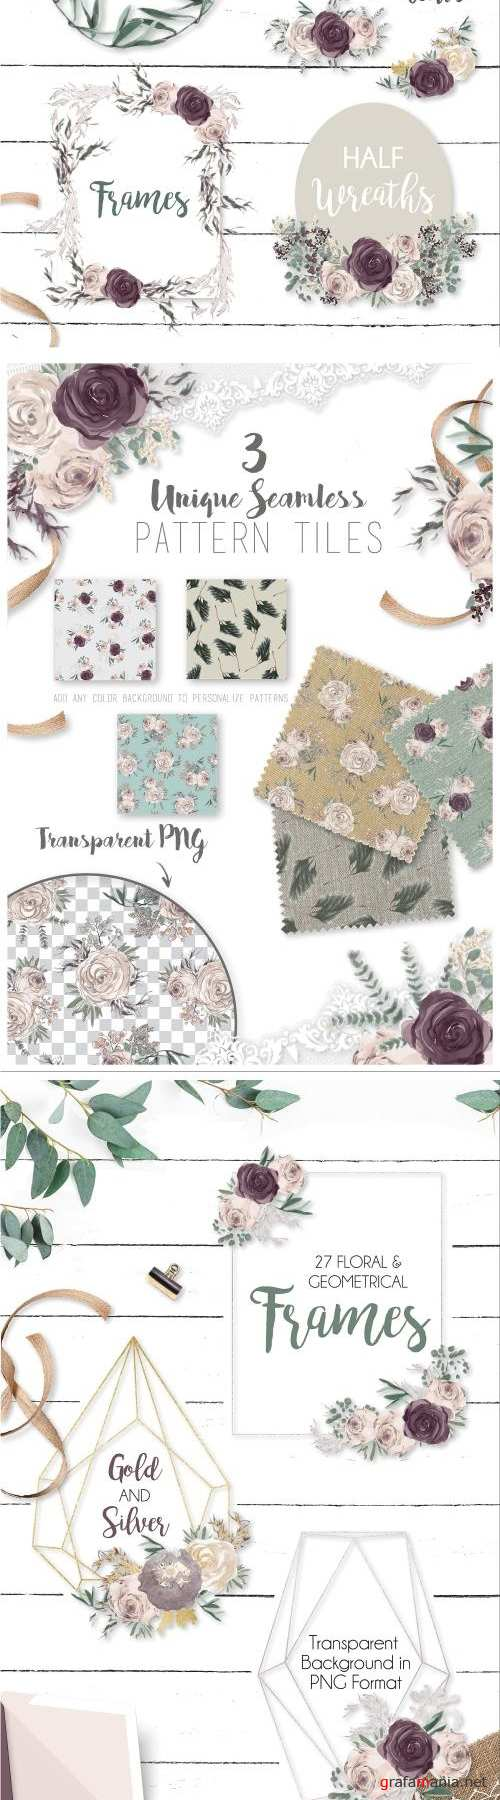 Delicately Modern Watercolor Florals - 2368584